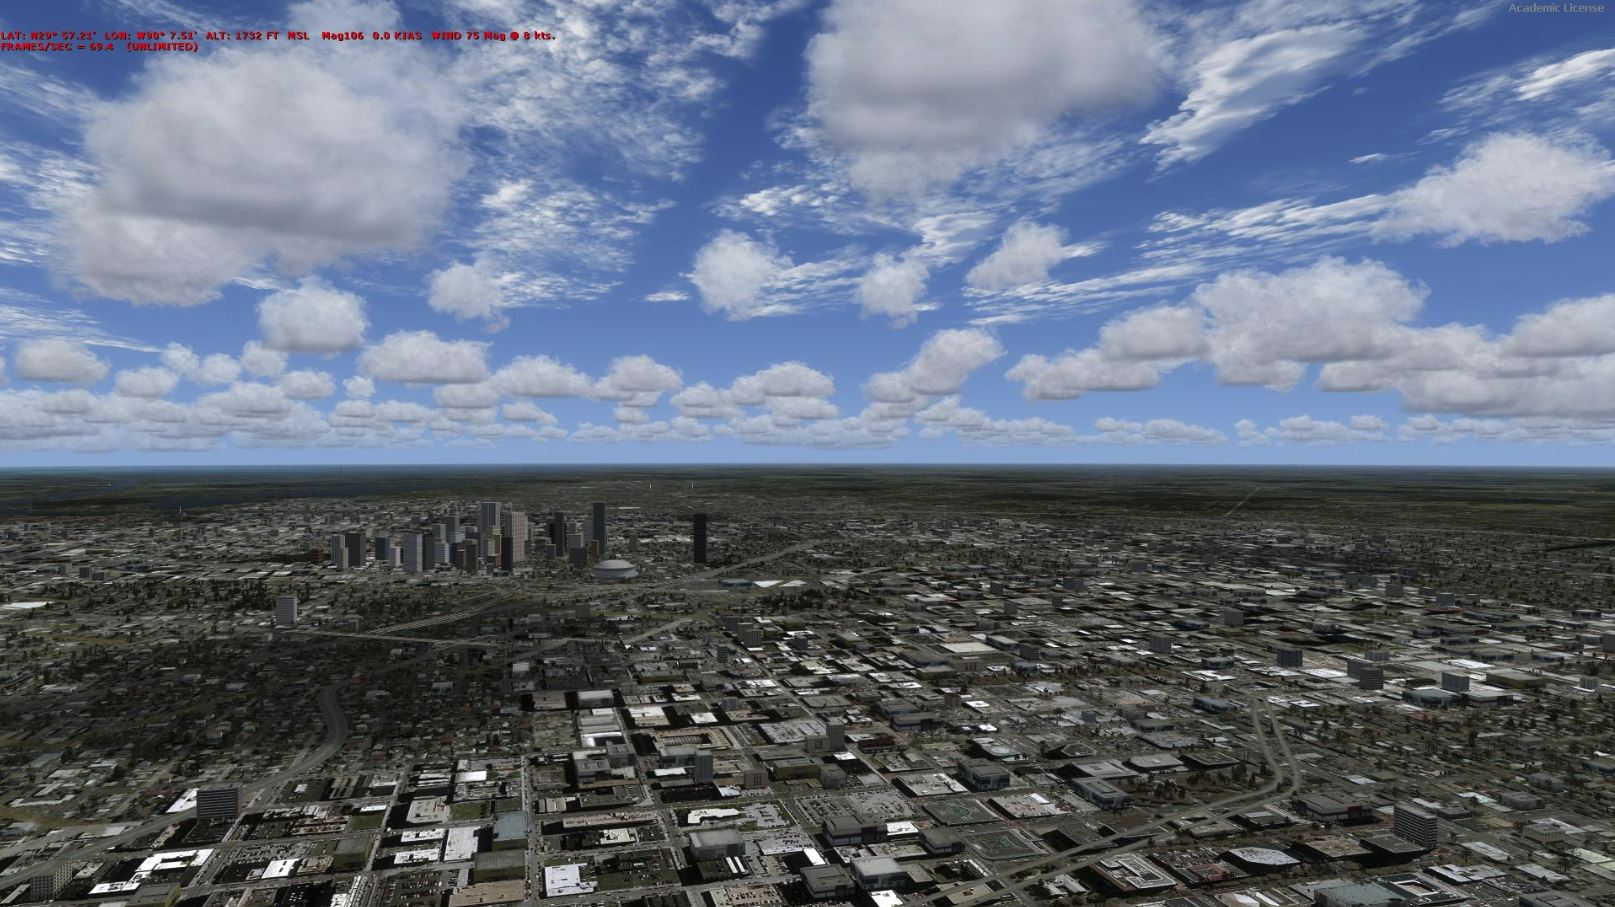 Hands-On: Xtreme Cities X USA South-Central released for P3D